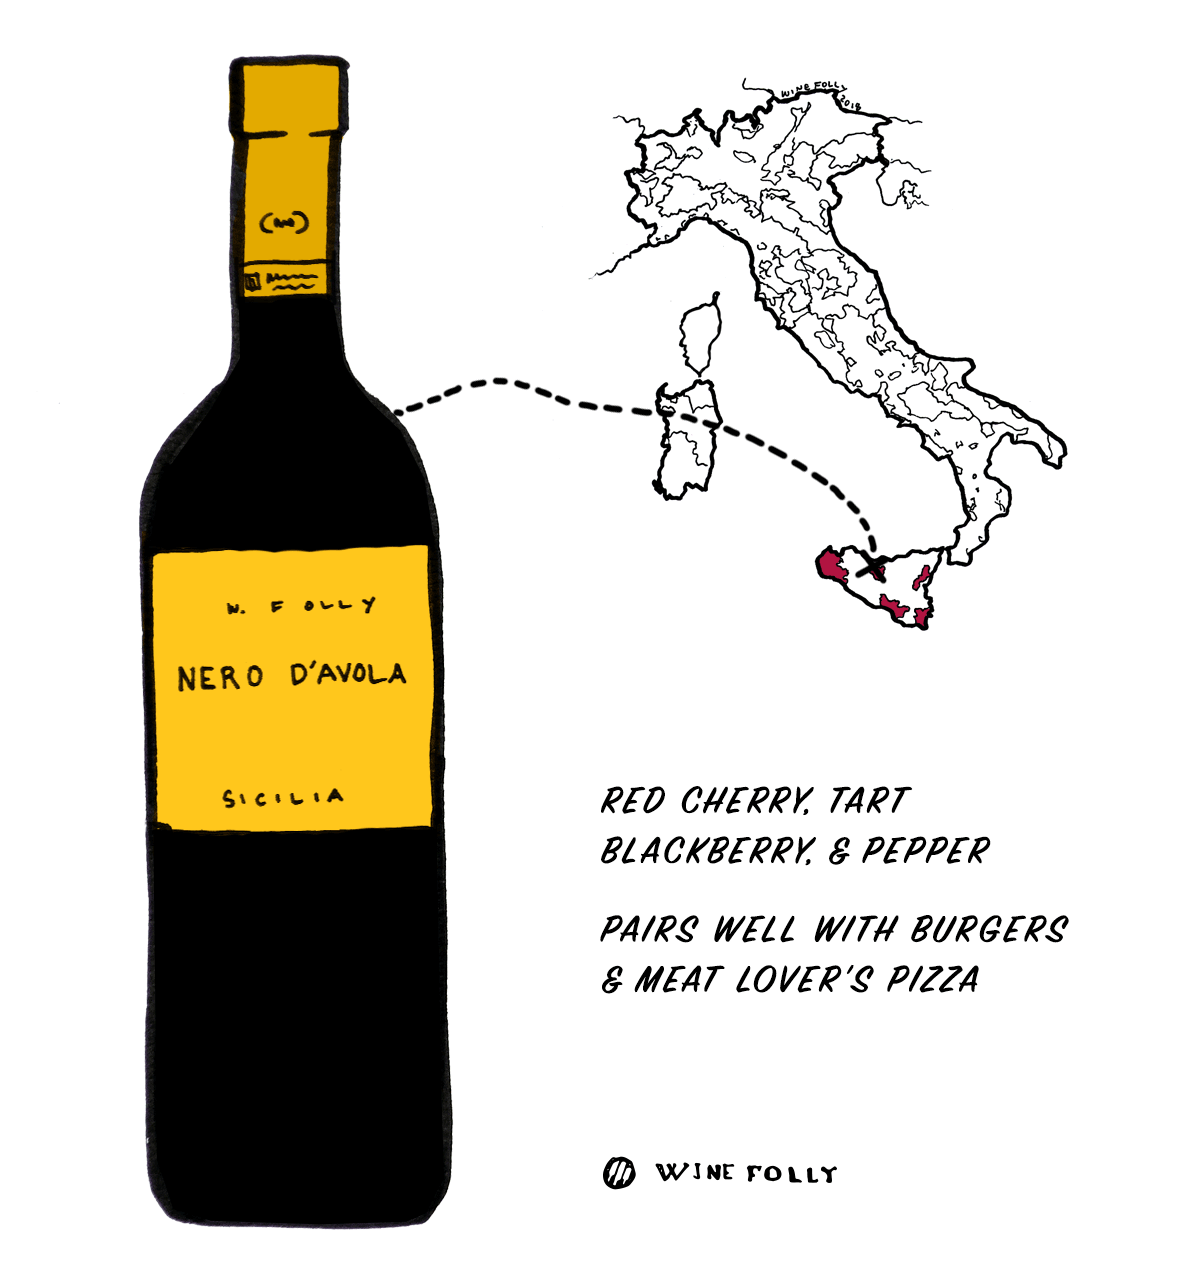 Nero d'Avola - Great Italian red wine for beginners from Sicily